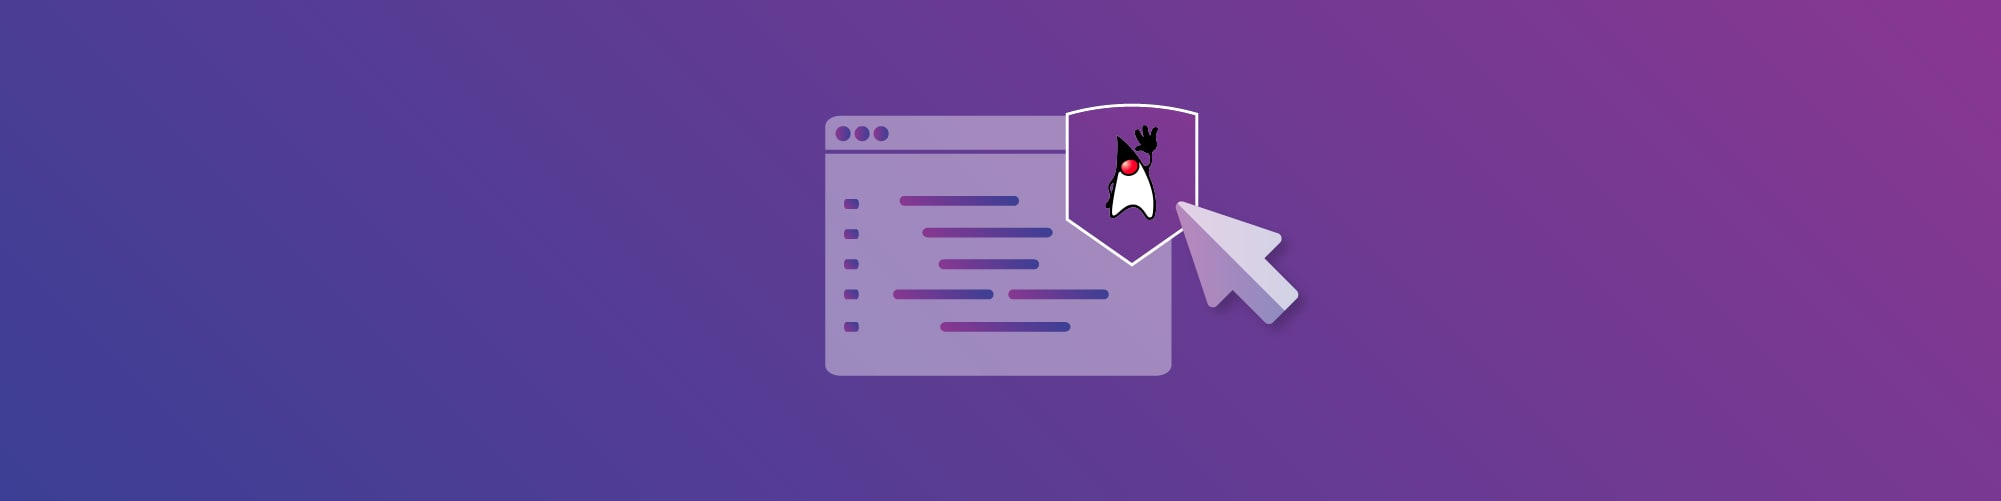 Secure Java development with Snyk